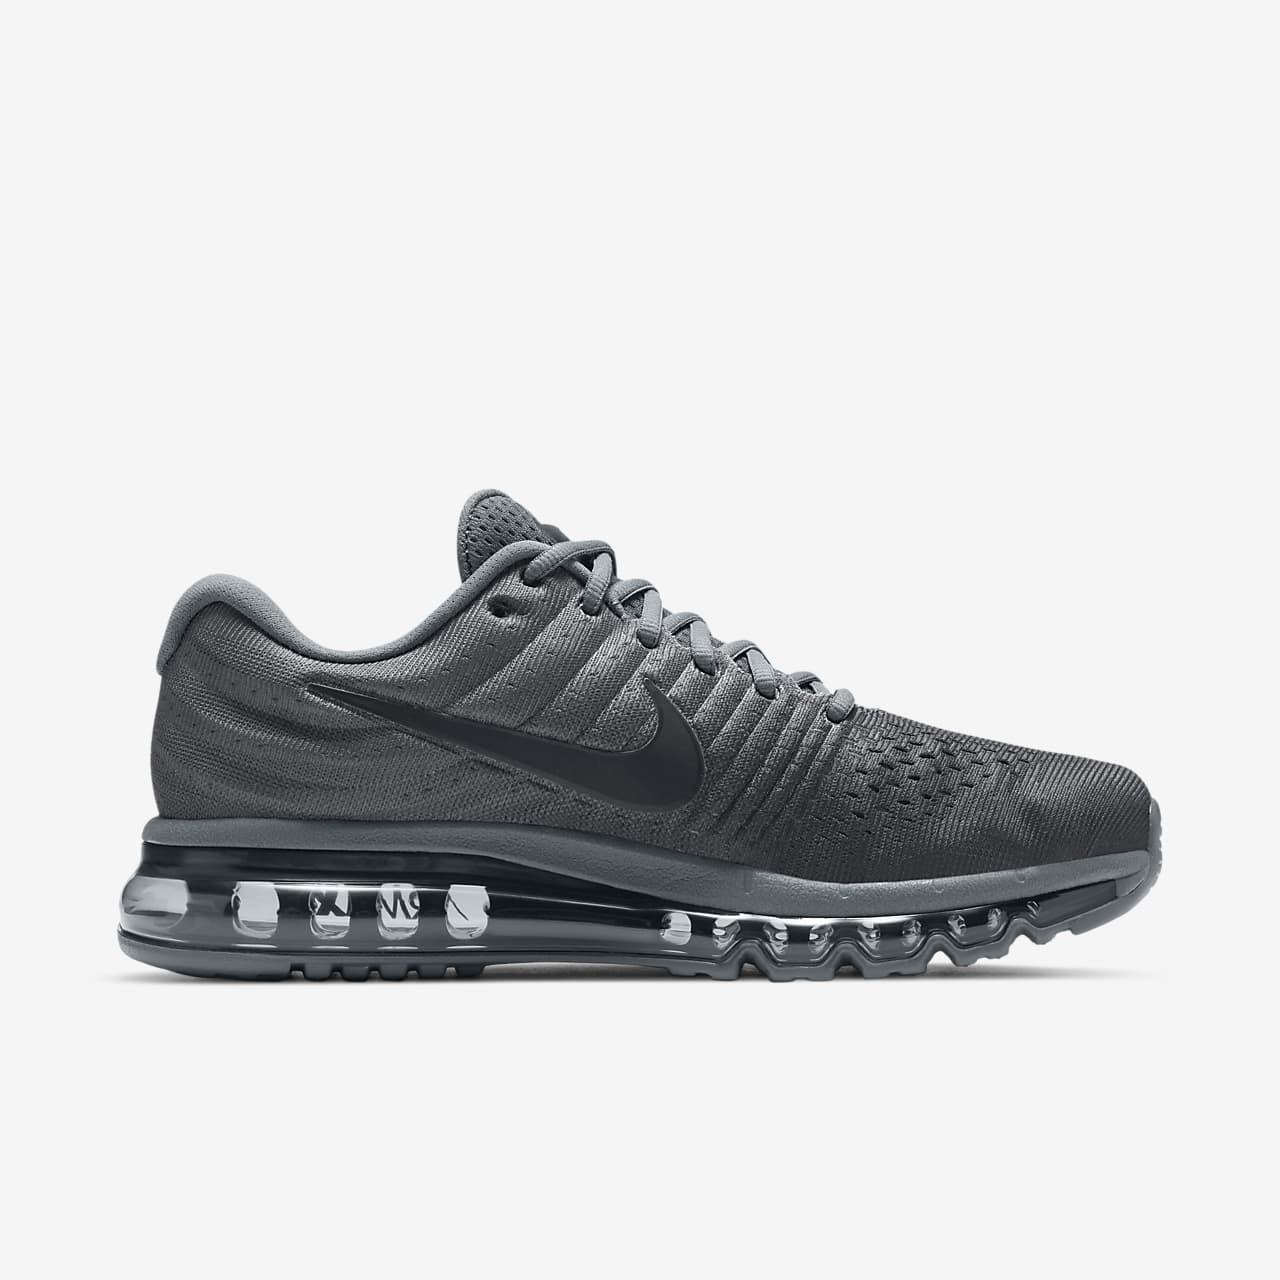 brand new 4dc9b f7b05 ... Nike Air Max 2017 Men s Shoe